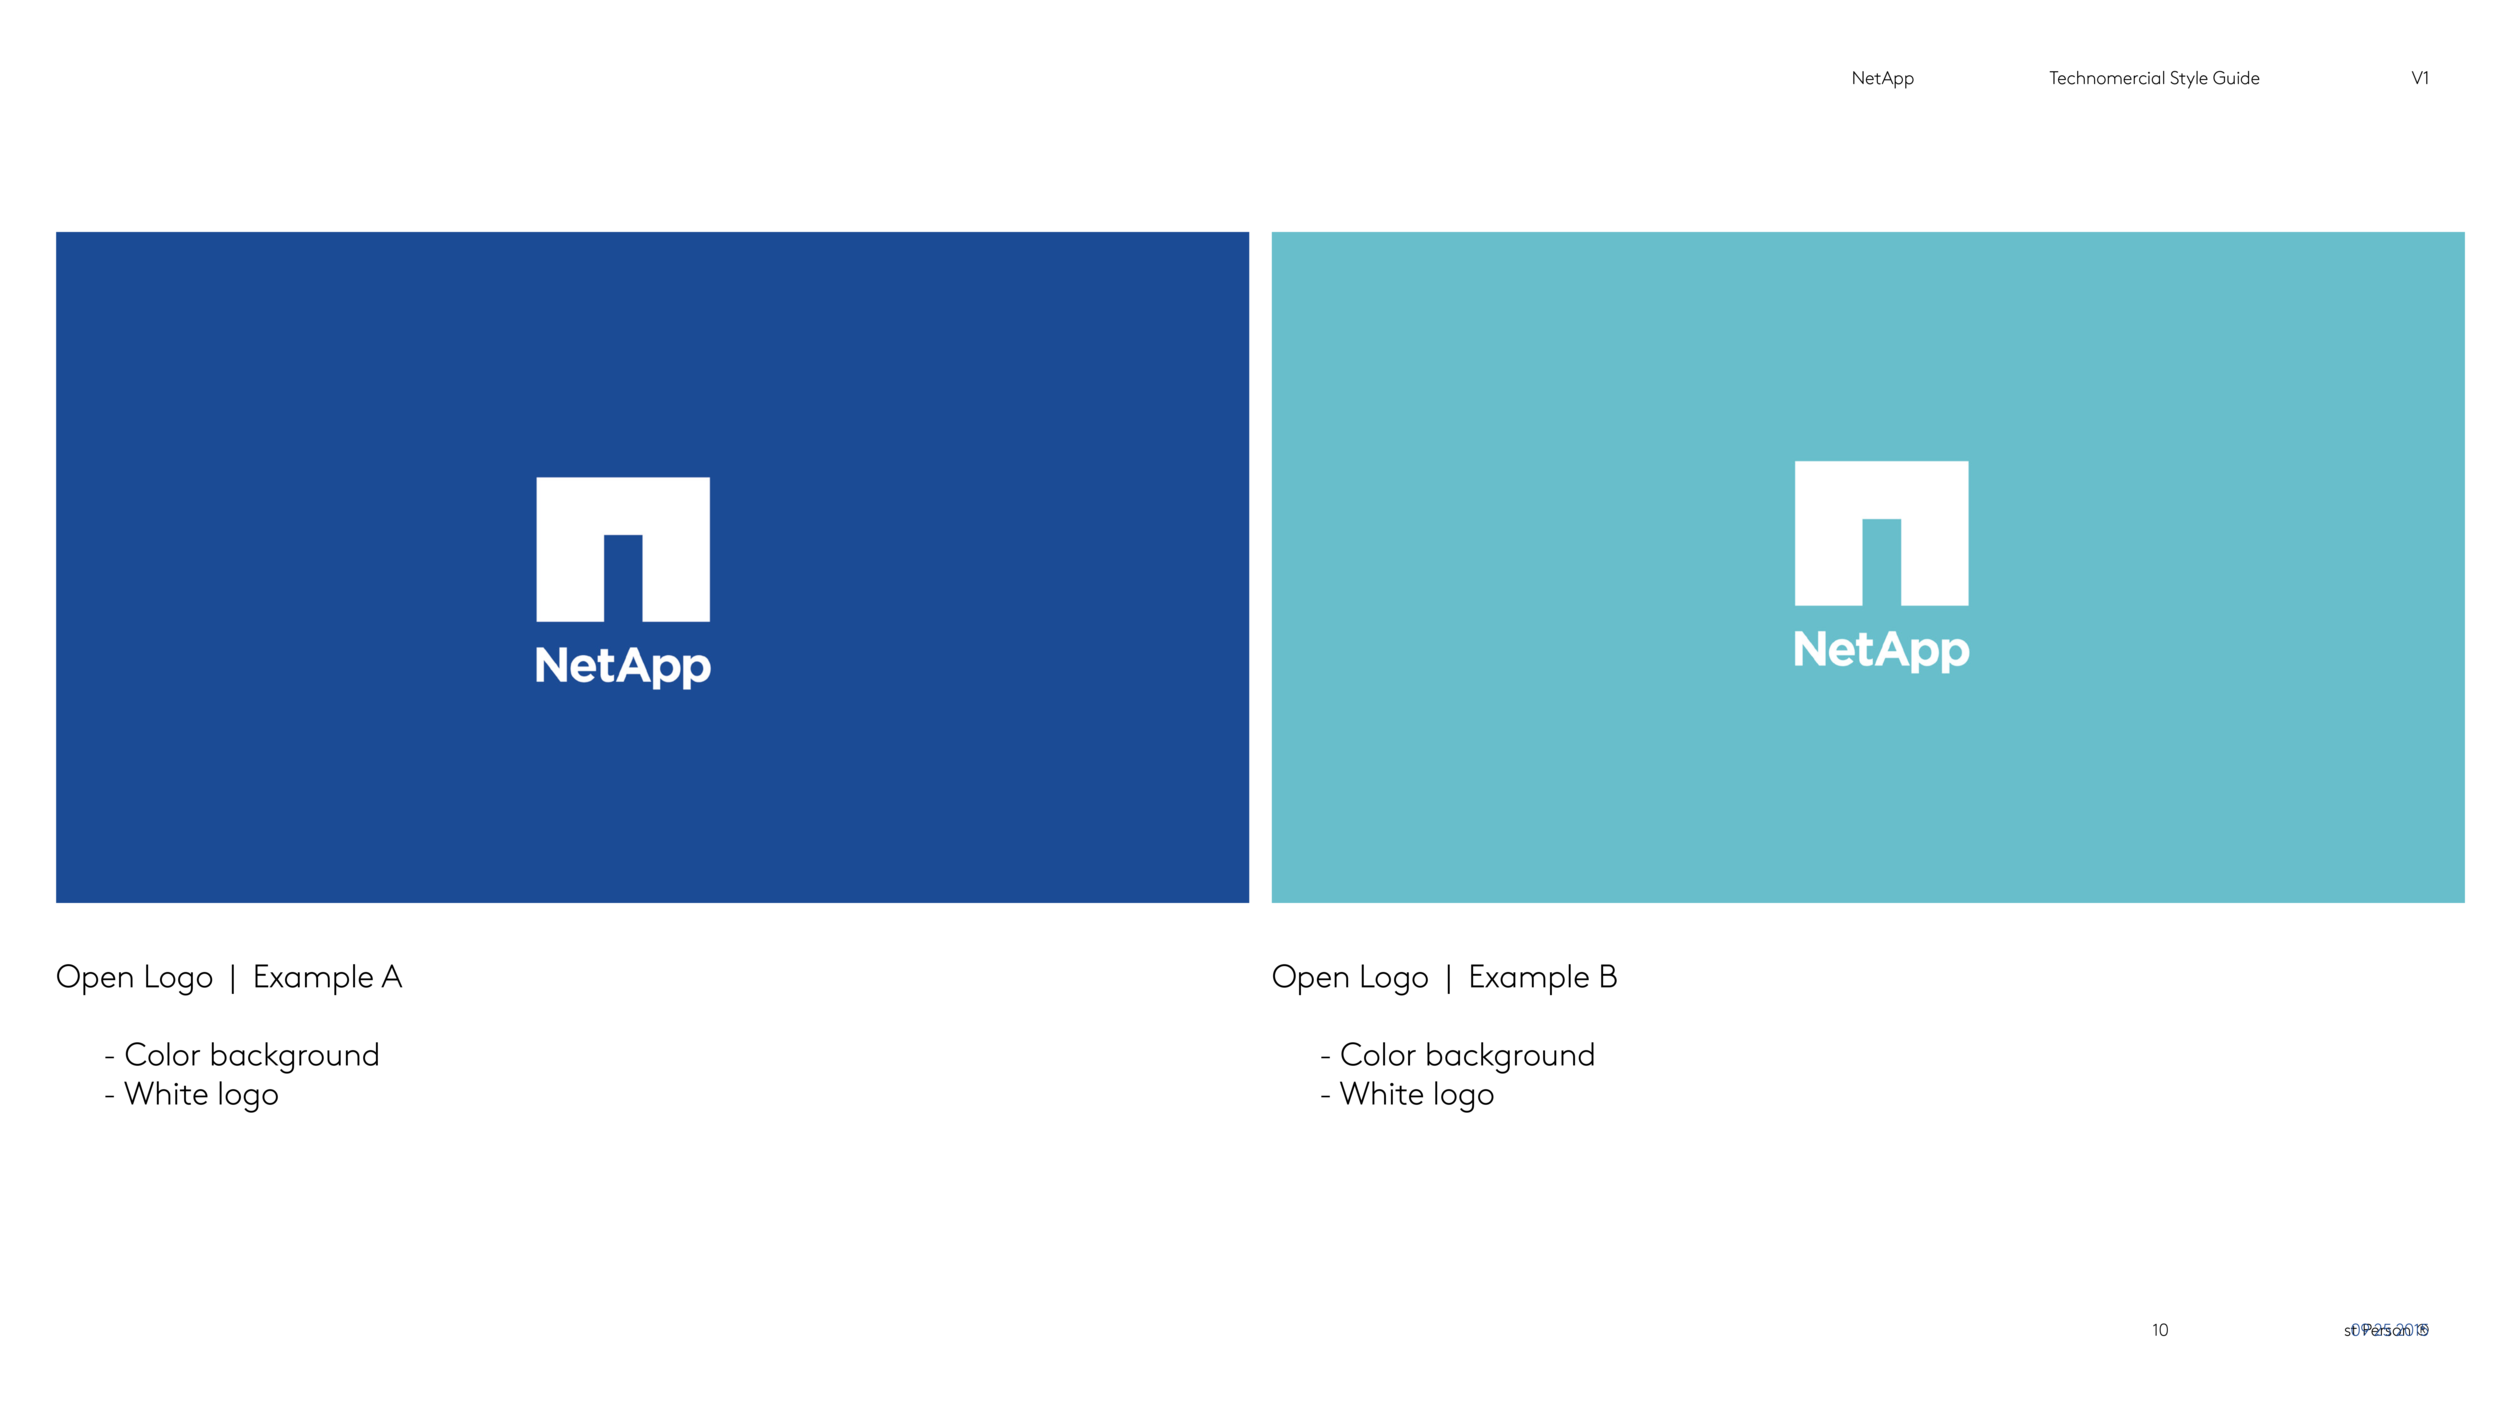 NetApp_Technomercial_Guidelines_01-10.png